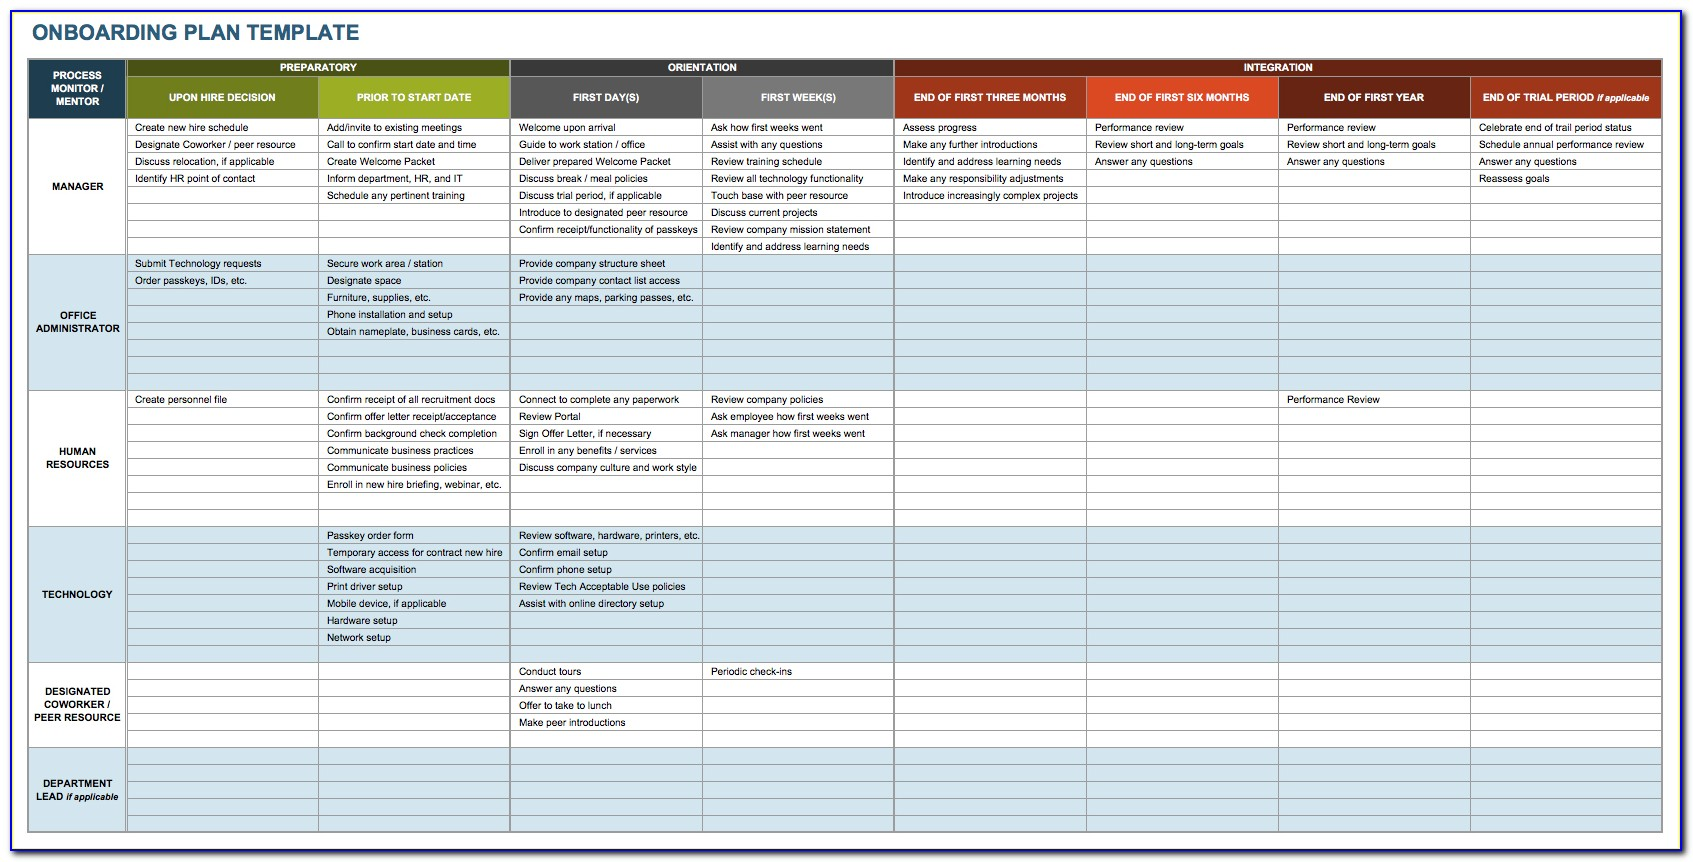 Onboarding Training Template Excel